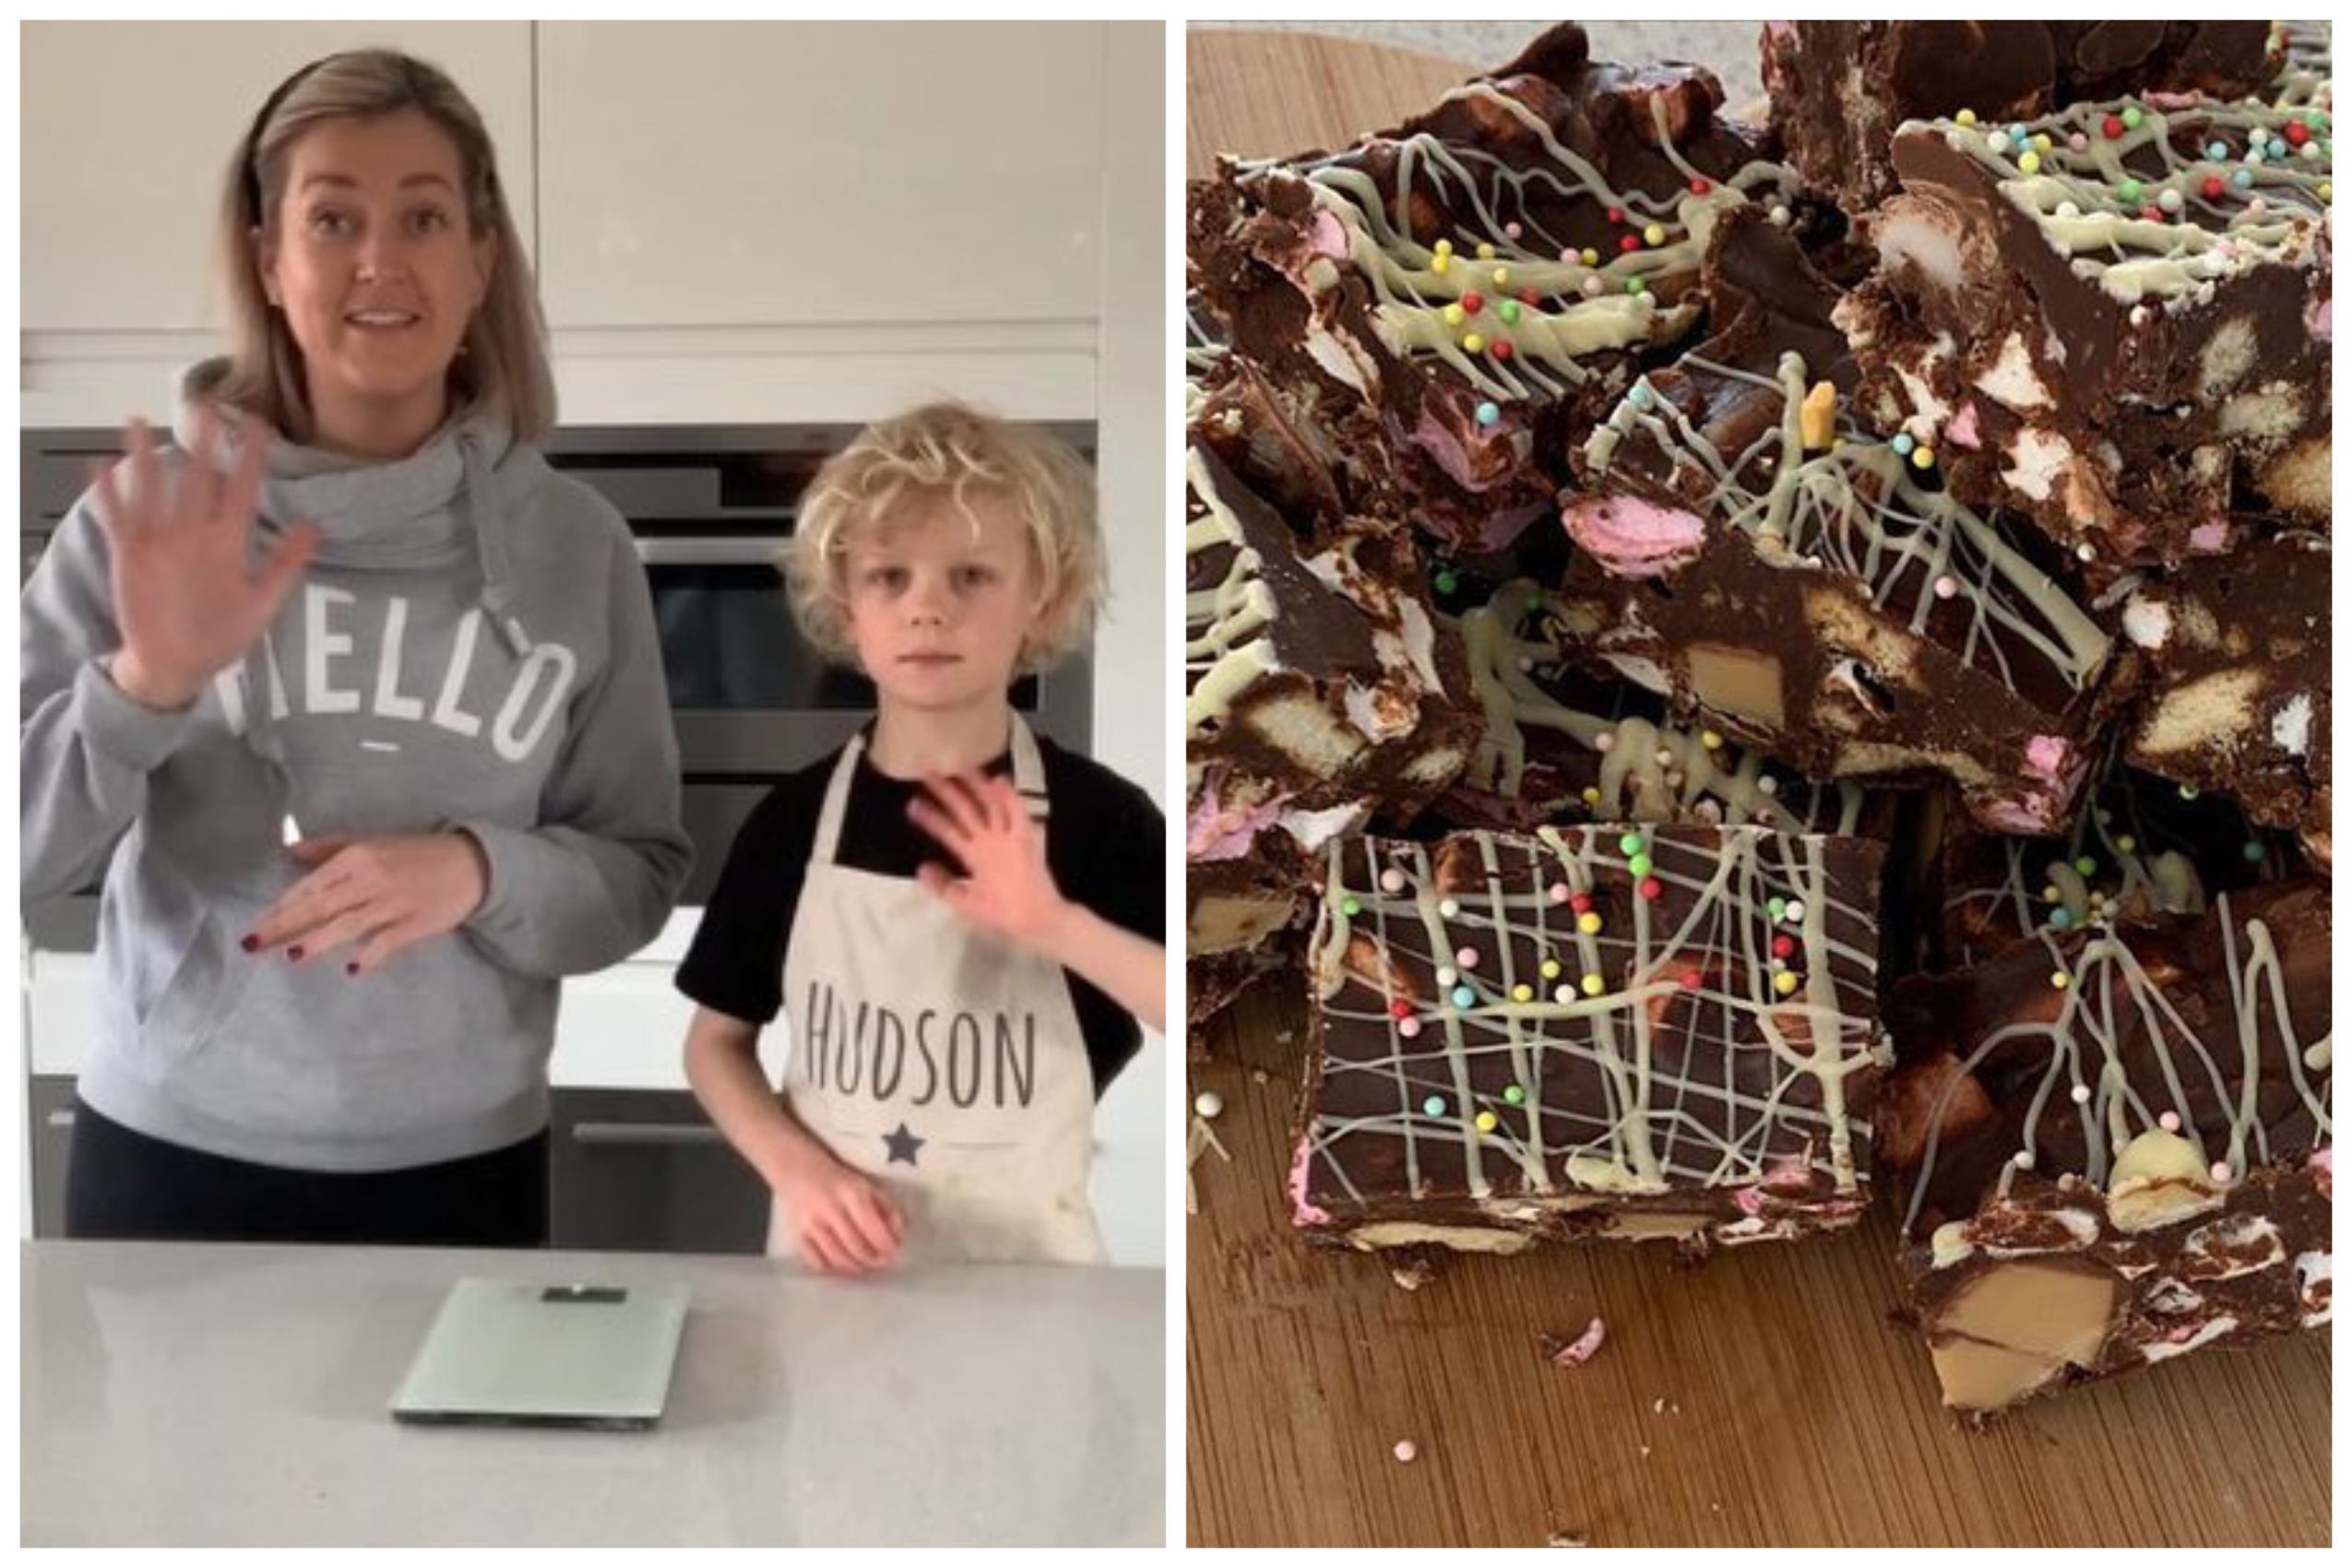 Vicky and Hudson with some of their rocky road bites